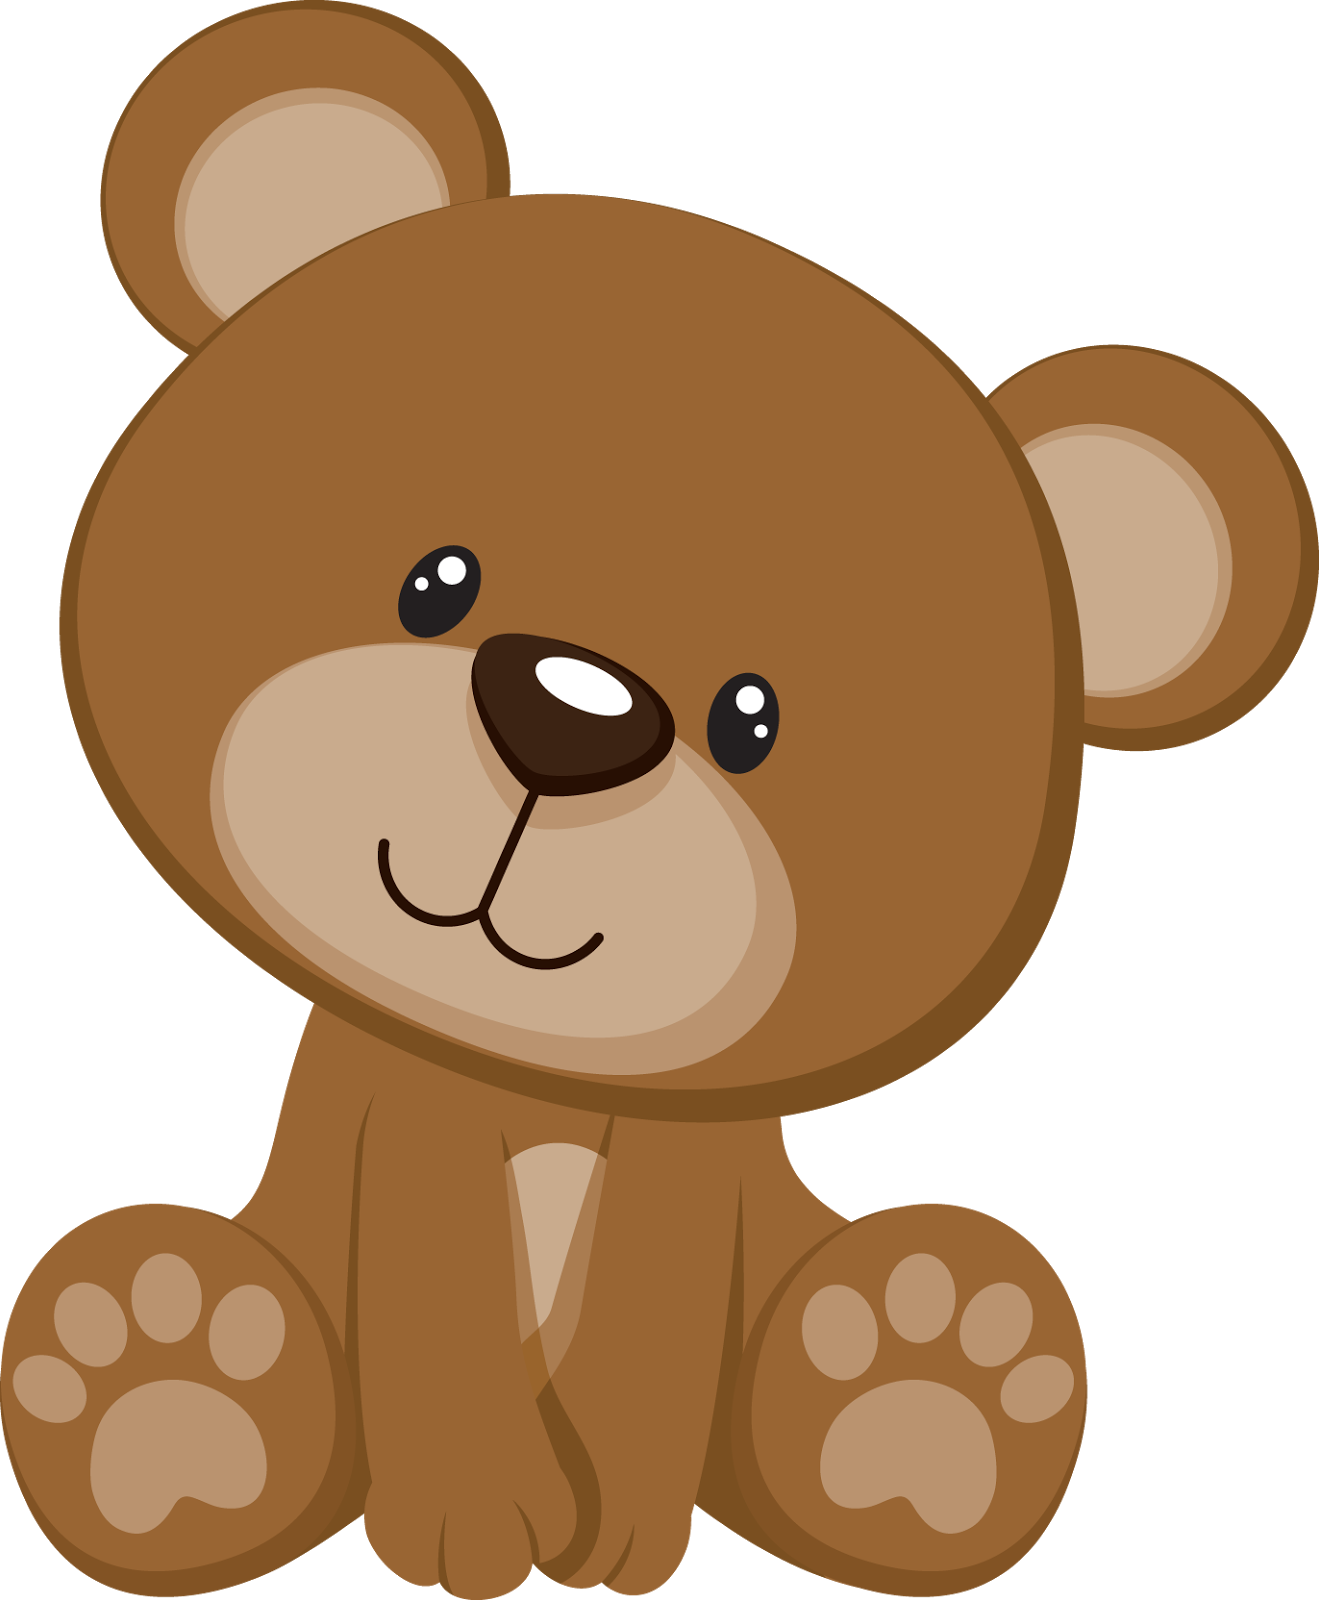 svg library stock For kids at getdrawings. Sleepy bear clipart